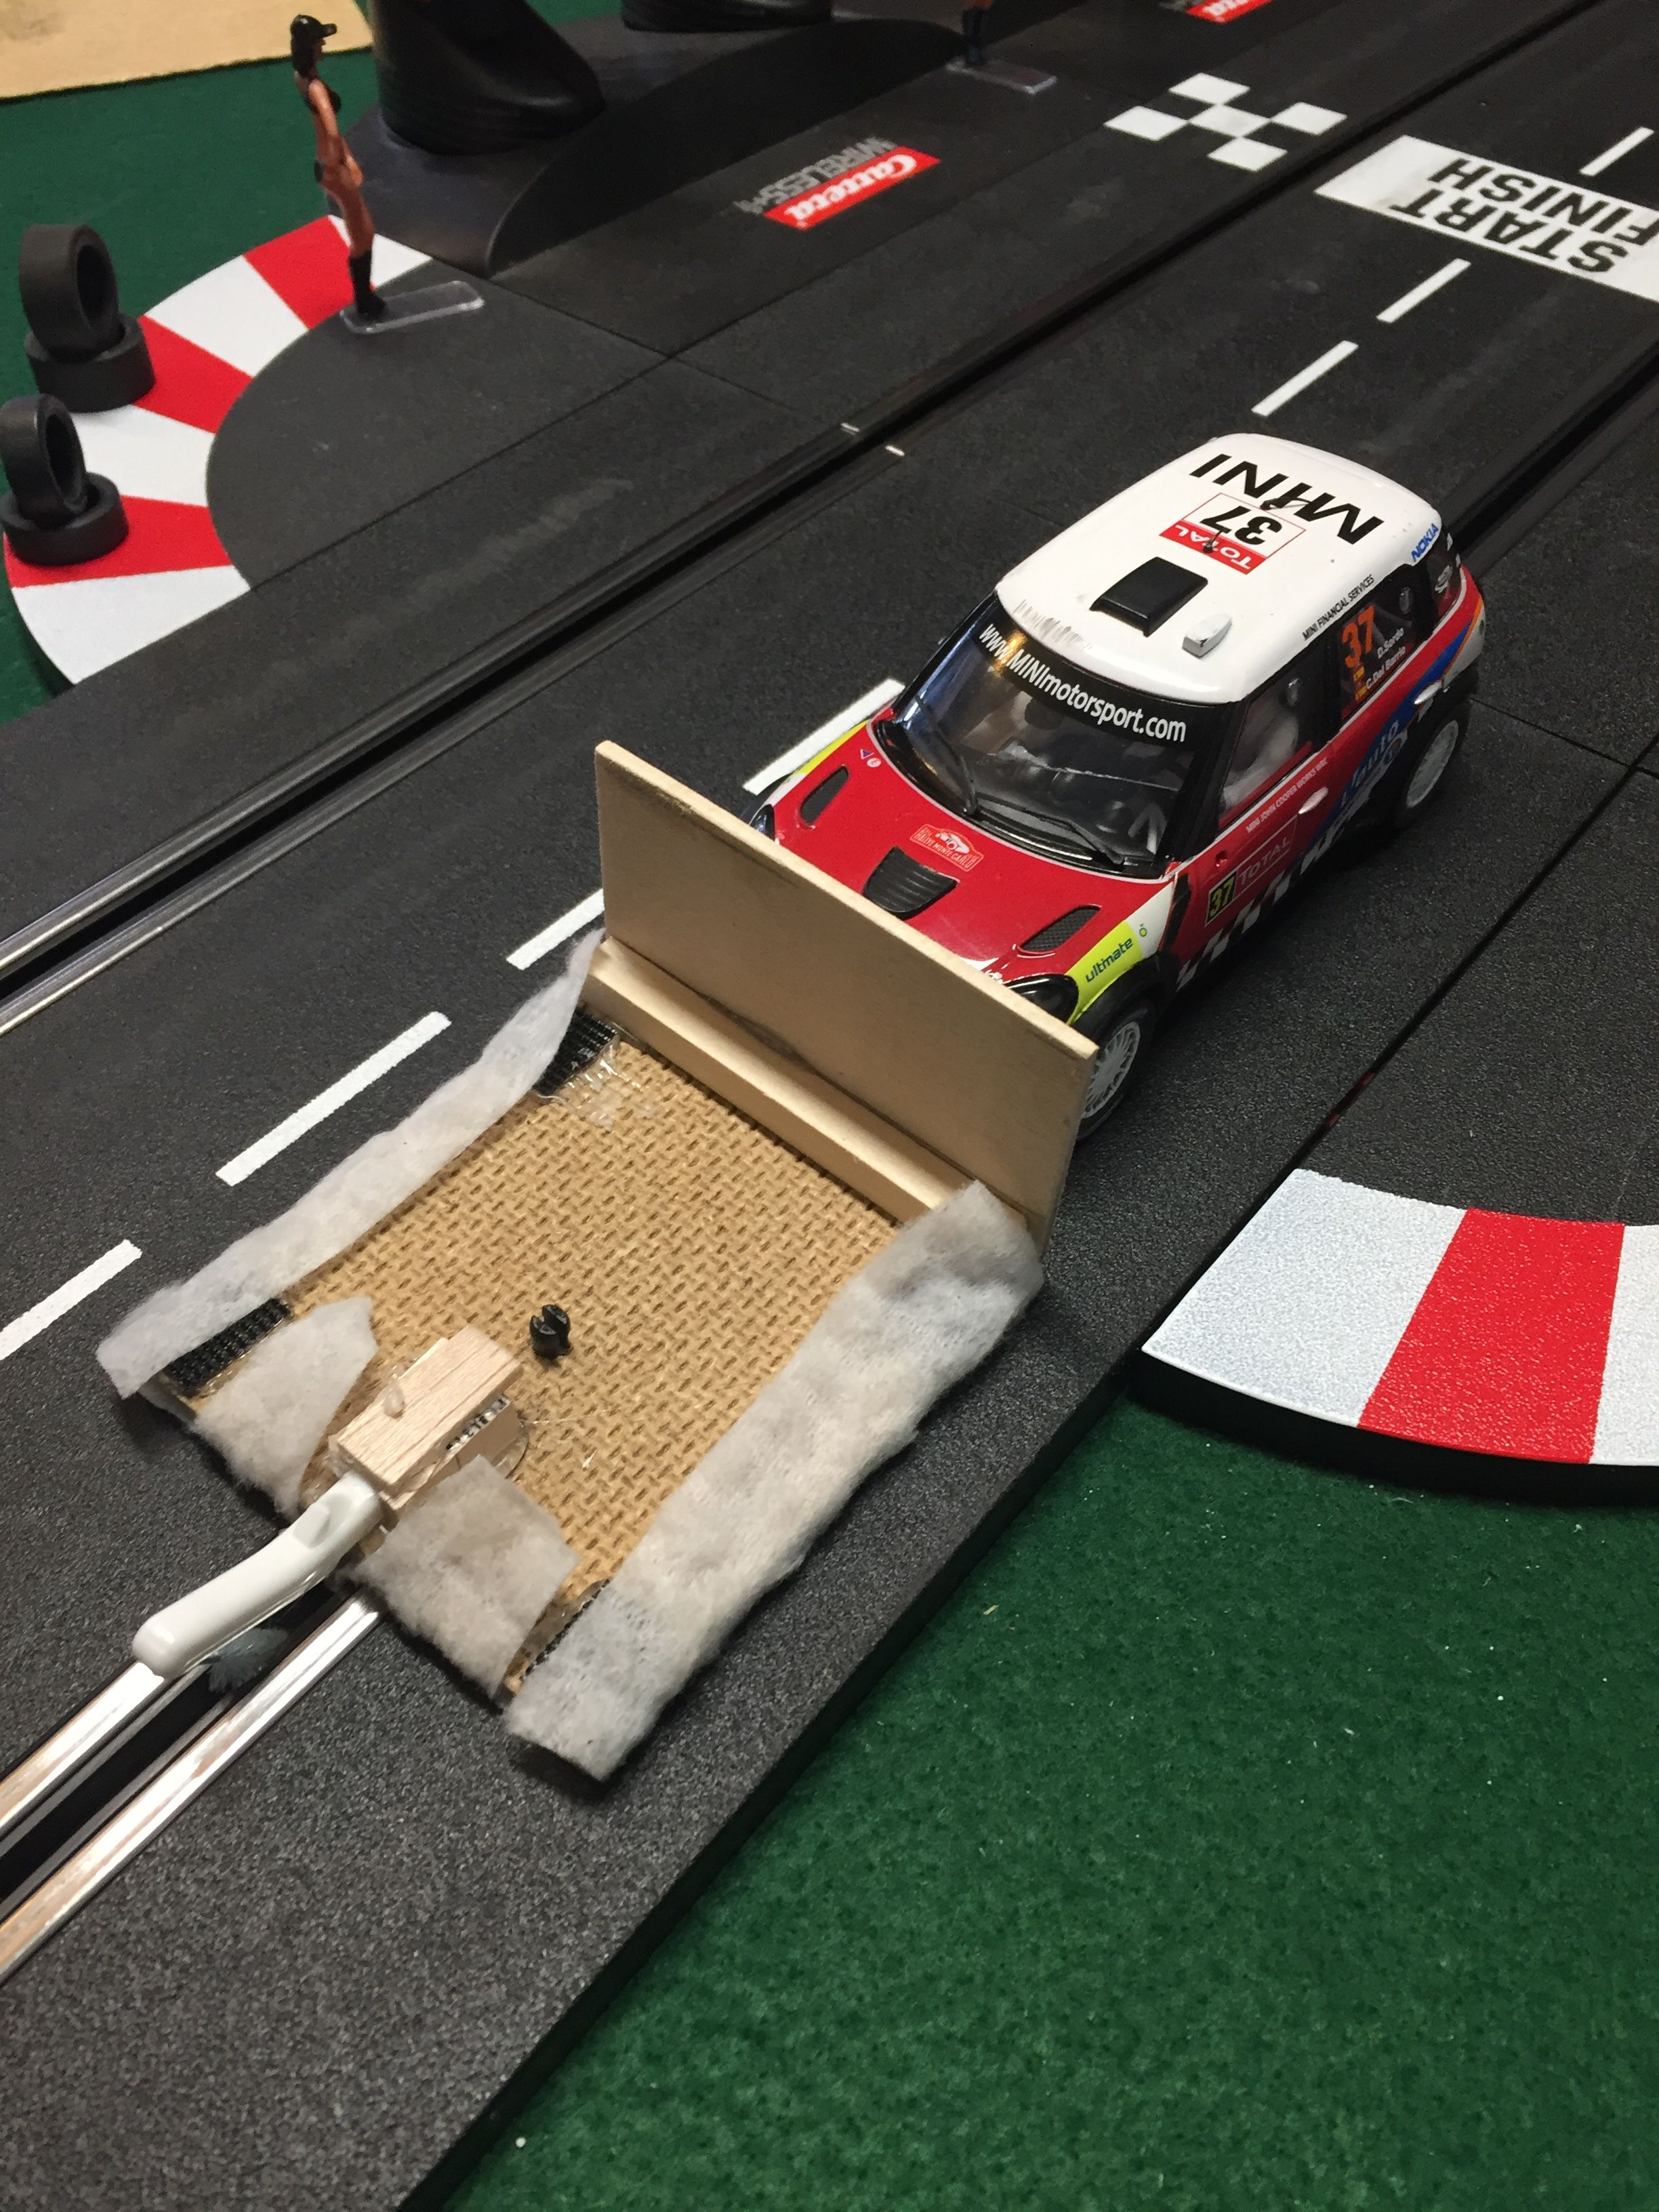 Made My Own Track Cleaner Works Pretty Good Slot Car Racing Slot Cars Slot Car Tracks